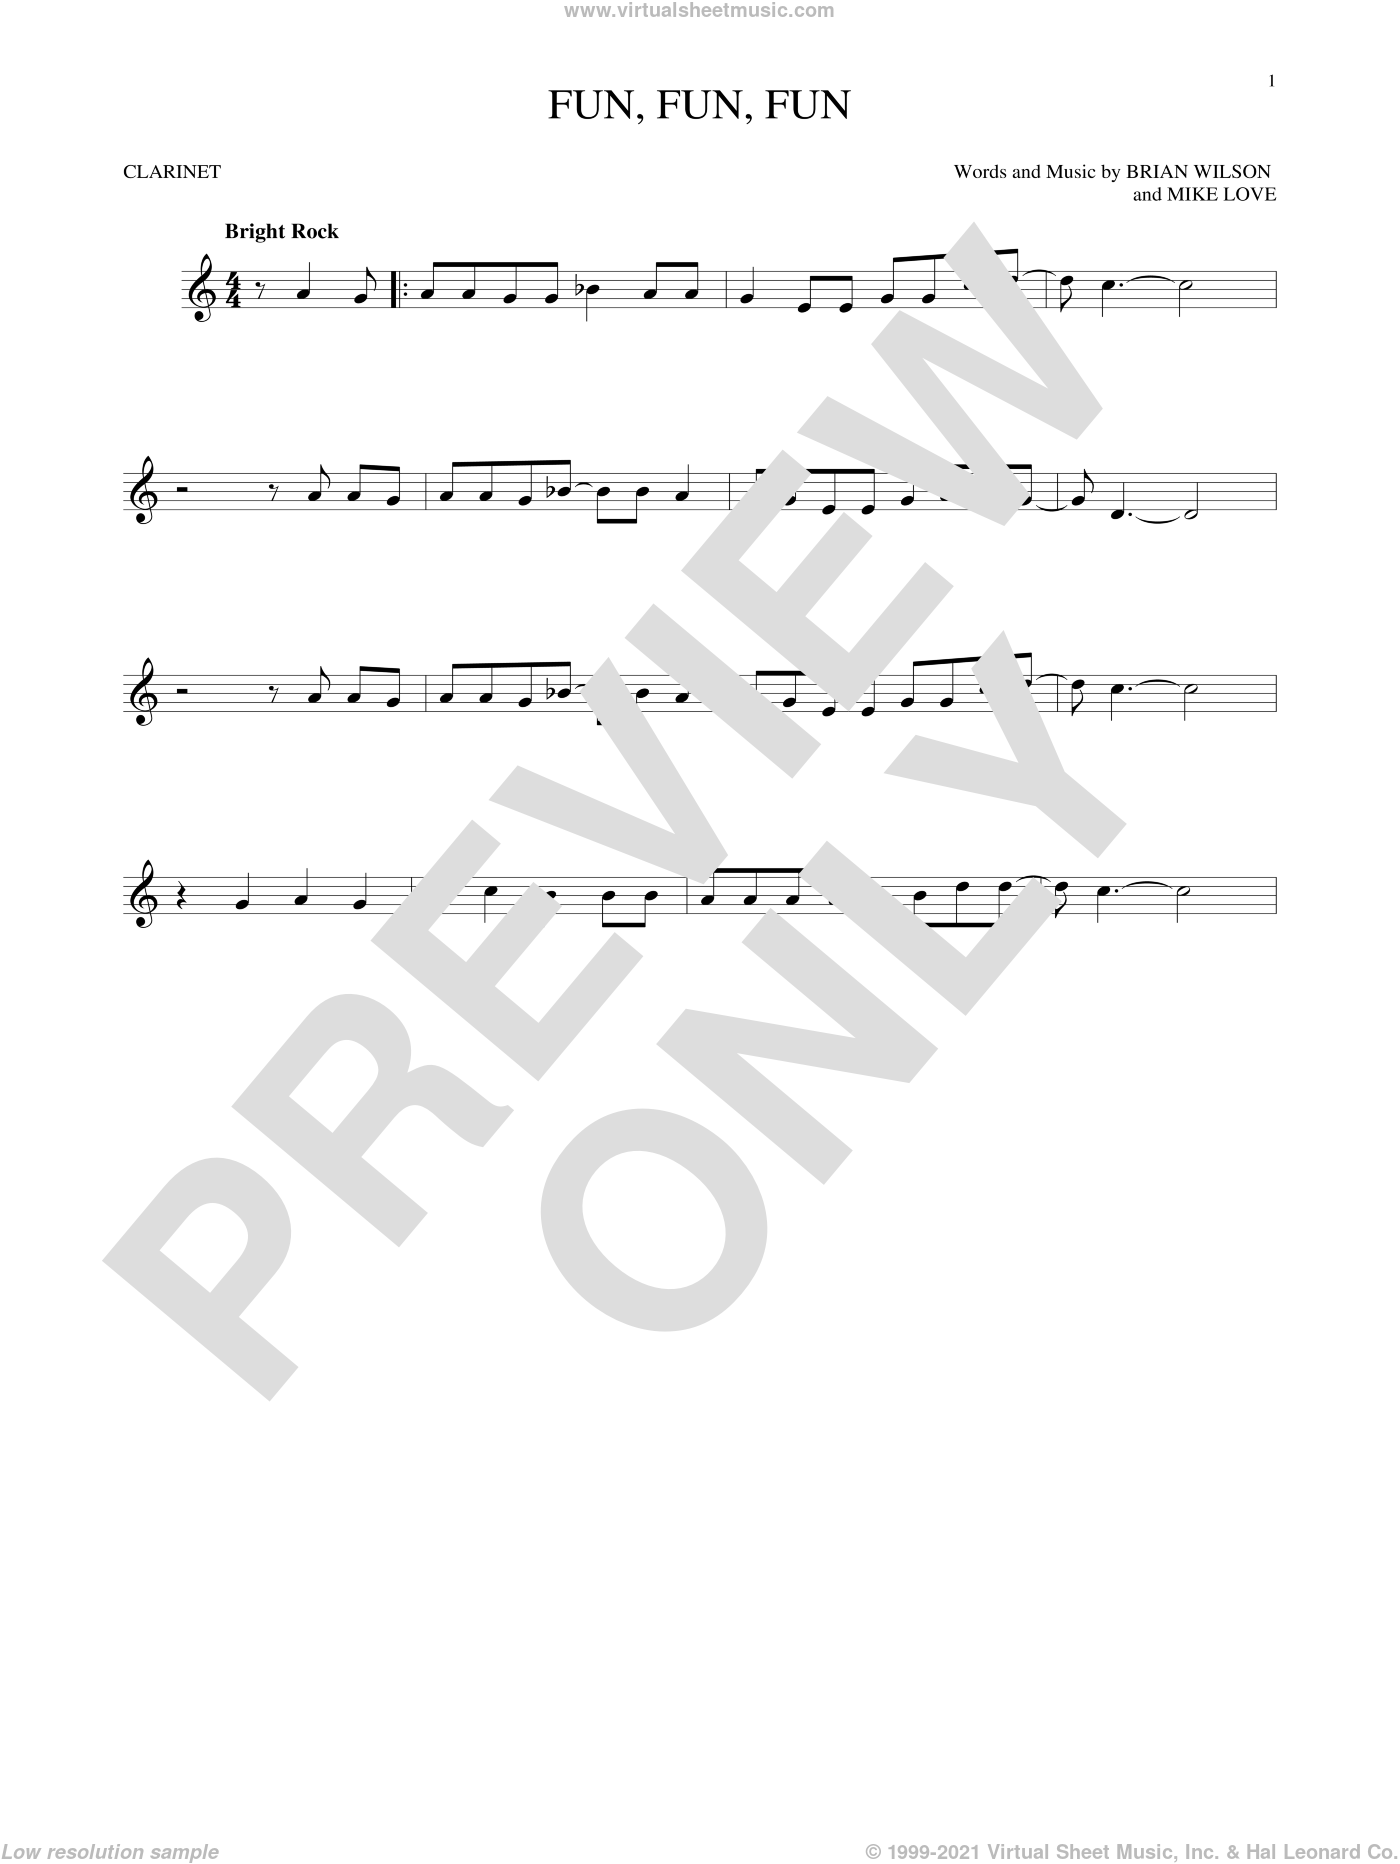 Fun, Fun, Fun sheet music for clarinet solo by The Beach Boys, Brian Wilson and Mike Love, intermediate skill level